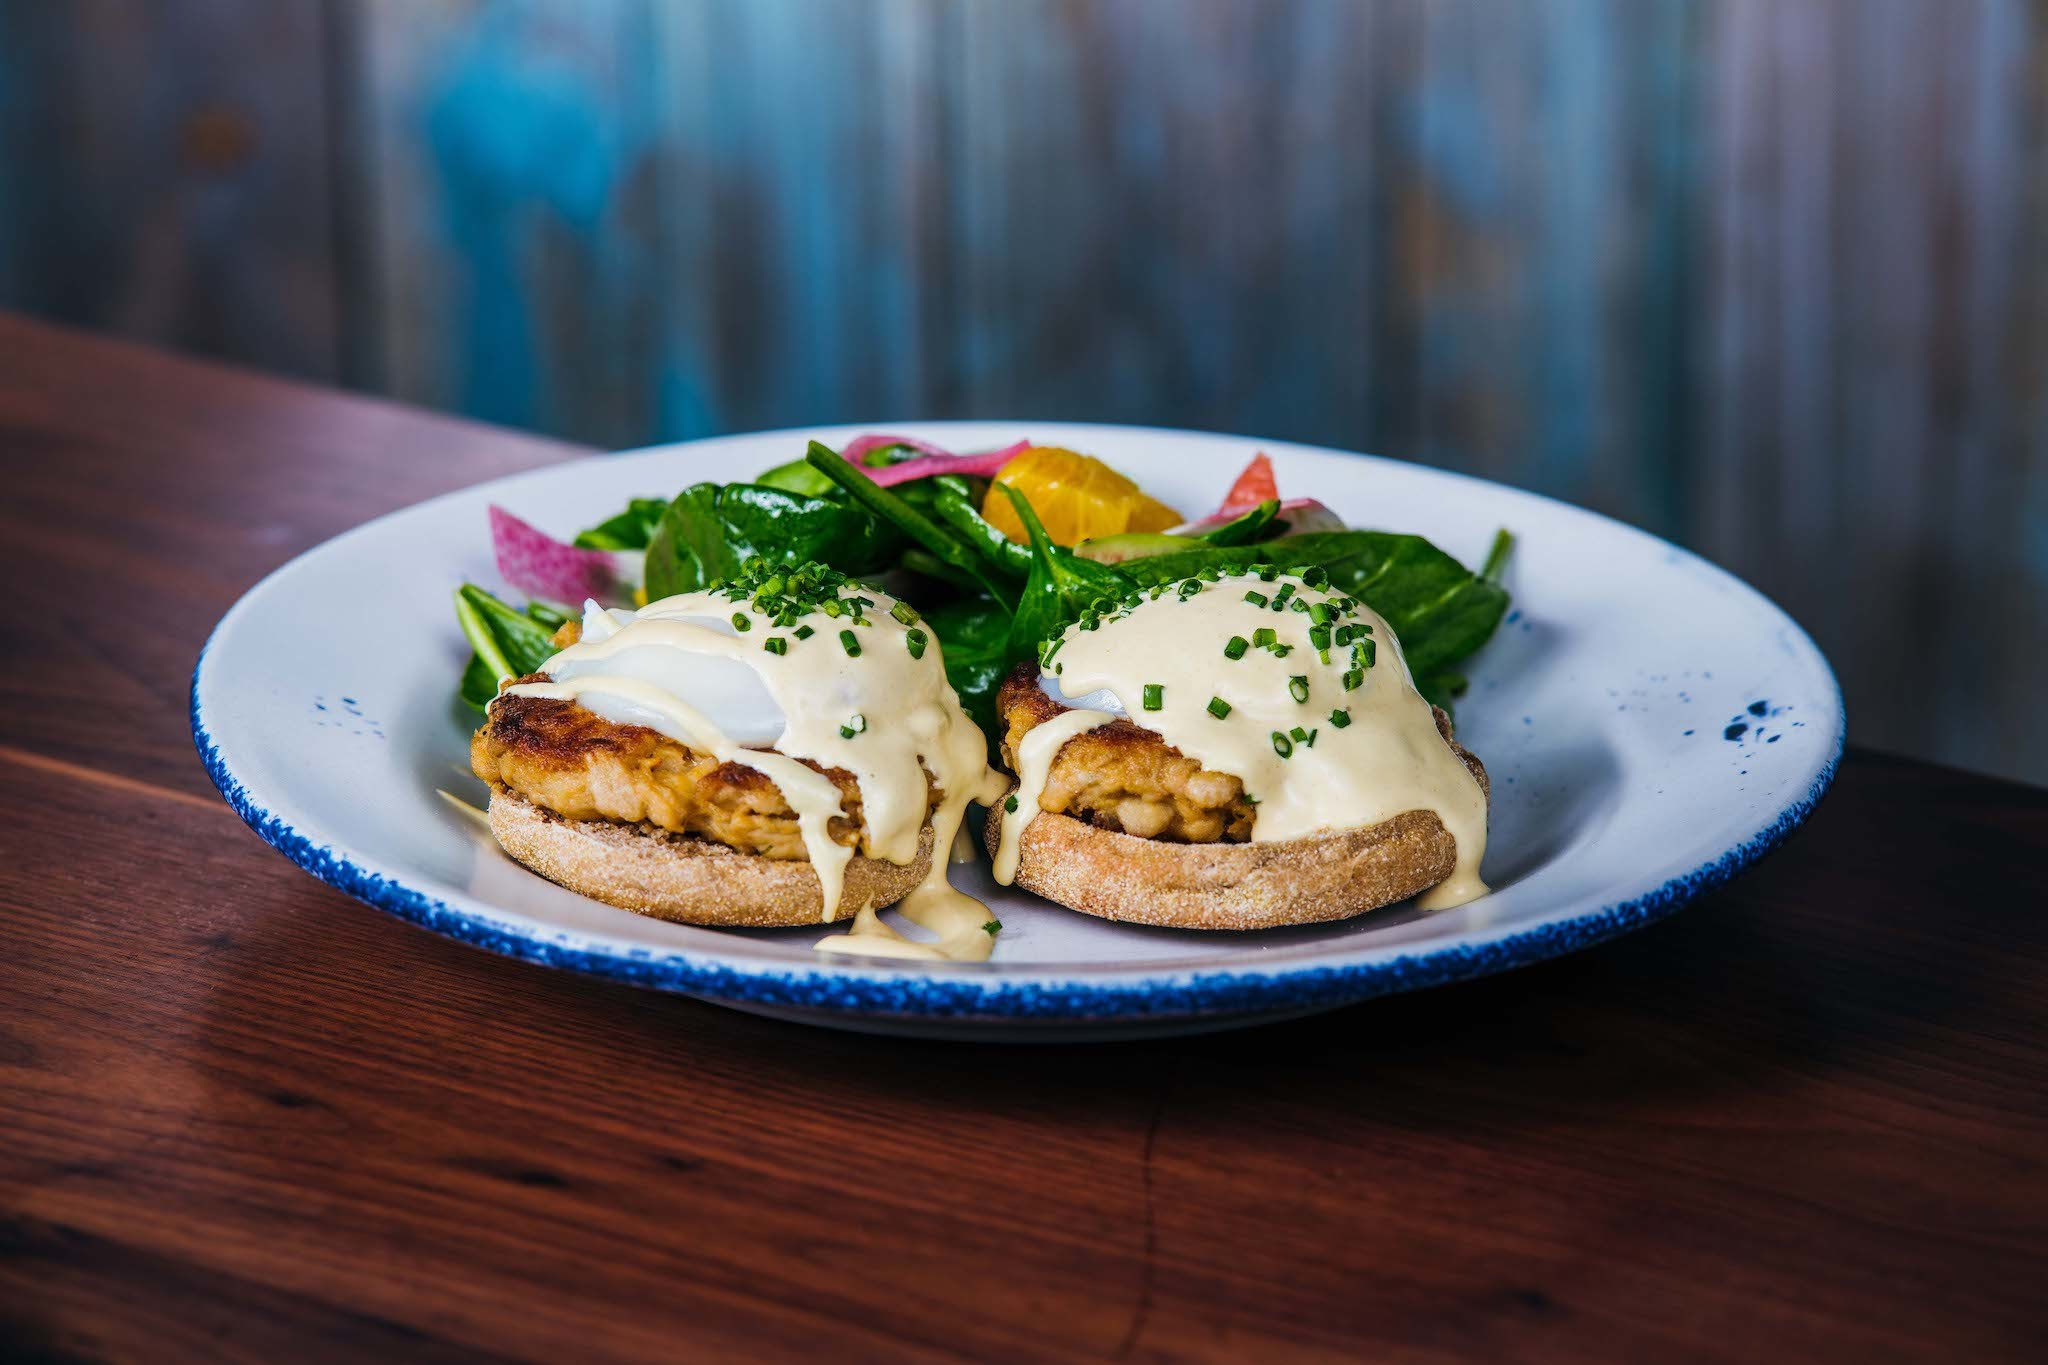 Where to go for Labor Day brunch in Miami